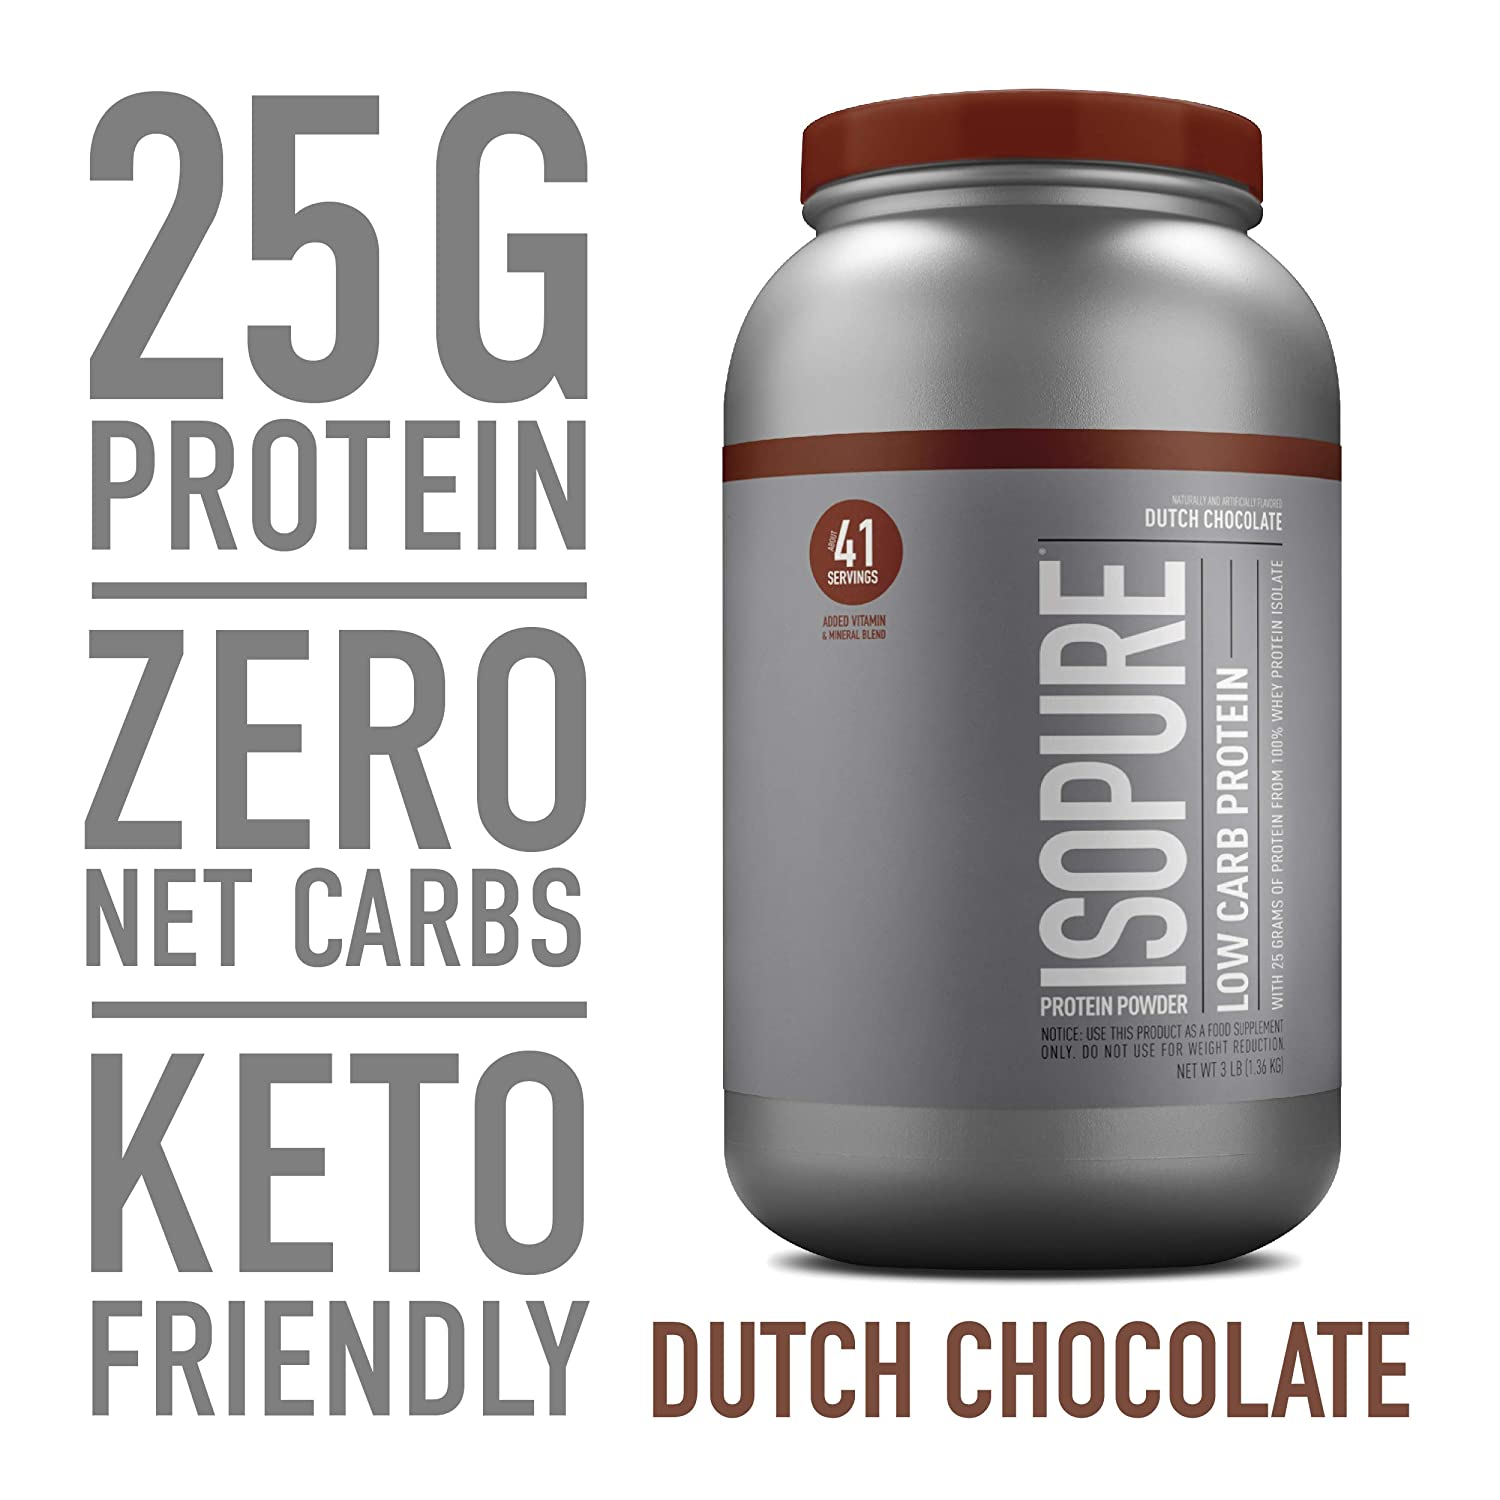 Isopure Low Carb, Keto Friendly Protein Powder, 100 Whey Protein Isolate, Flavor Dutch Chocolate, 3 Pounds